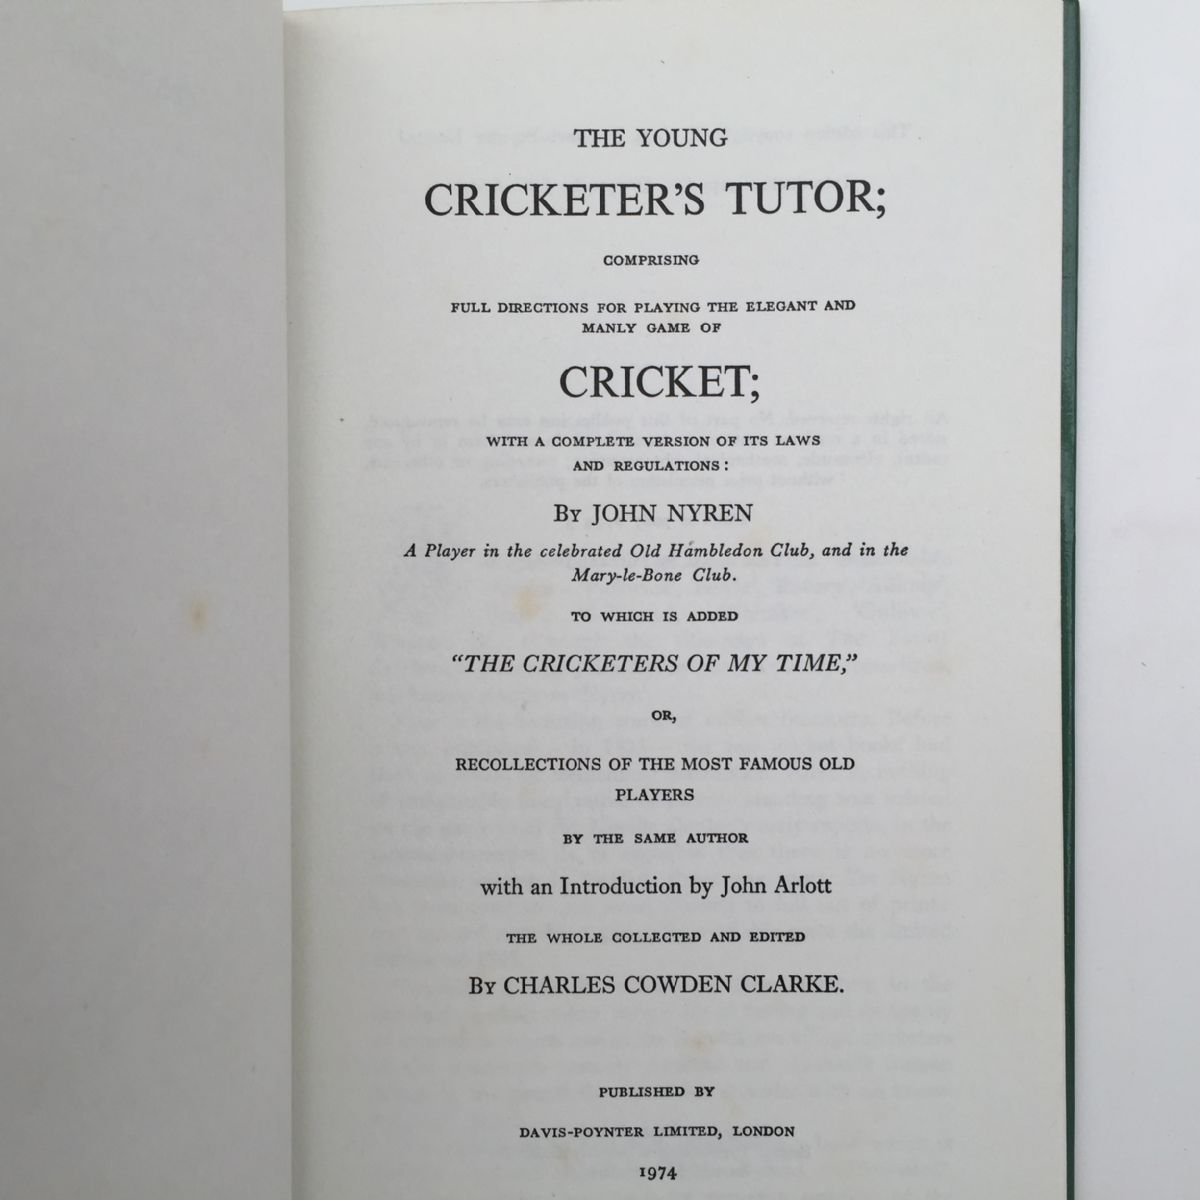 The Young Cricketer's Tutor